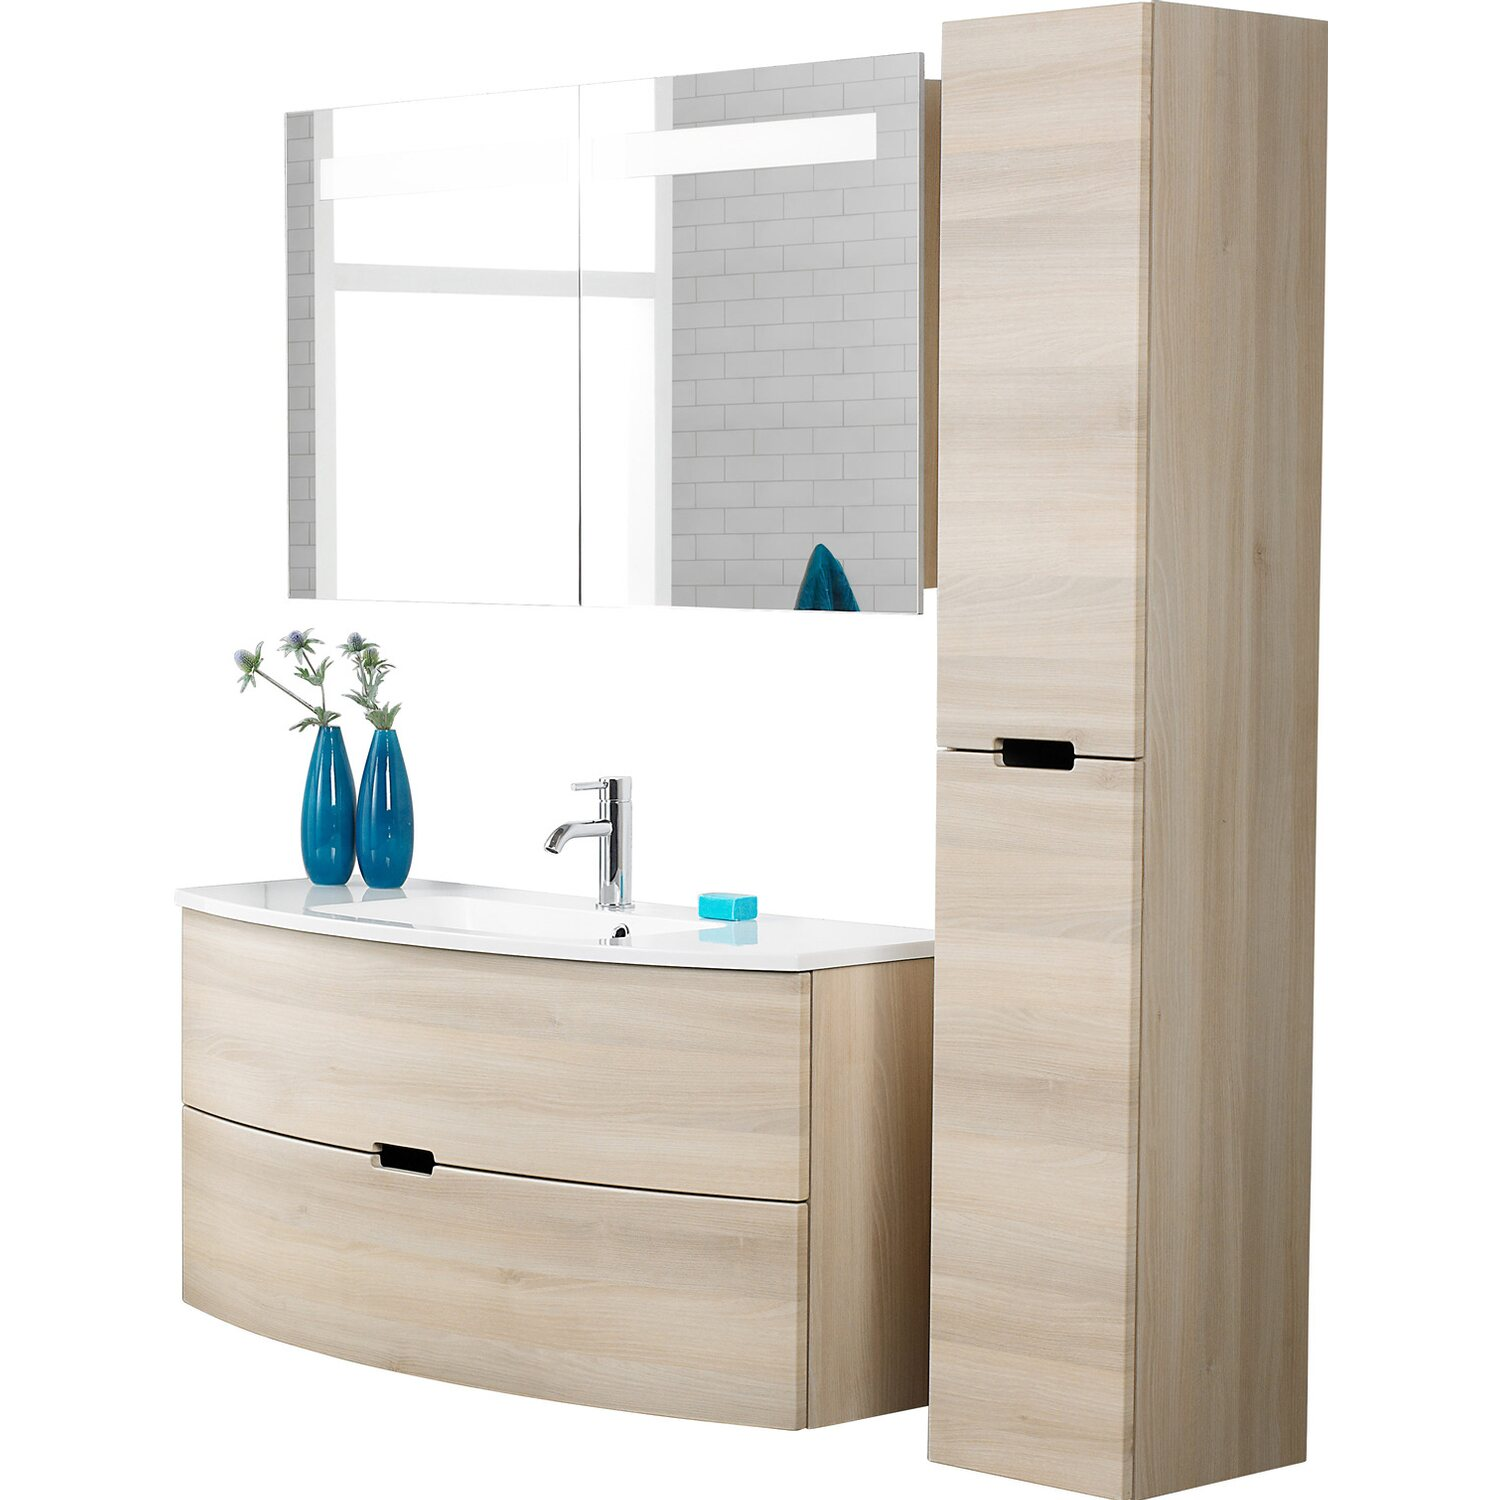 scanbad badm bel set 90 cm mit spiegelschrank modern sand 3 teilig kaufen bei obi. Black Bedroom Furniture Sets. Home Design Ideas